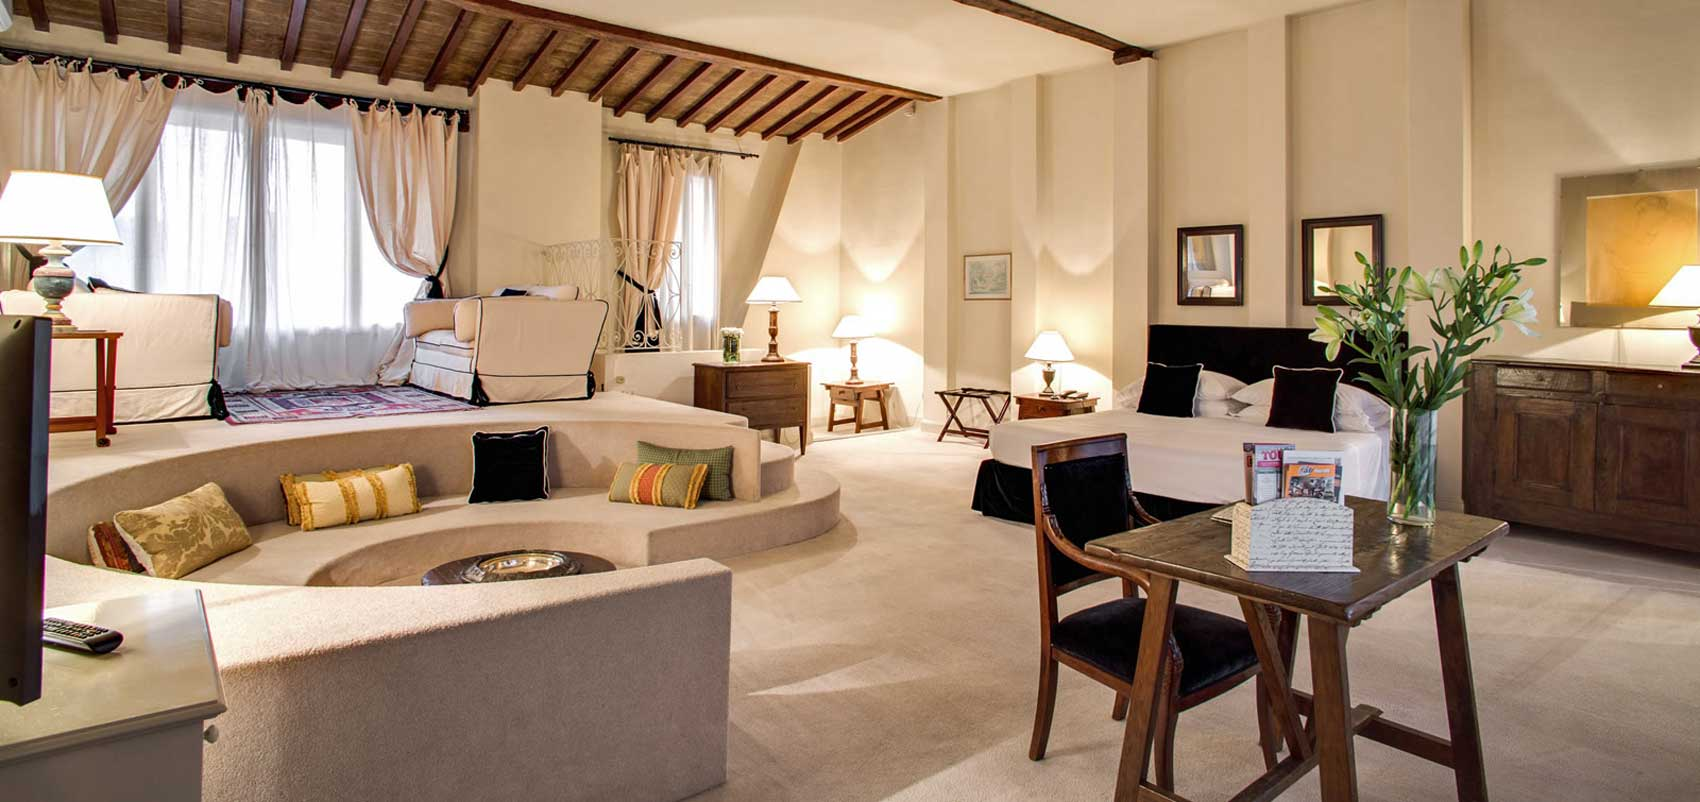 hotel j and j florence italie hotel 4 toiles centre historique florence. Black Bedroom Furniture Sets. Home Design Ideas